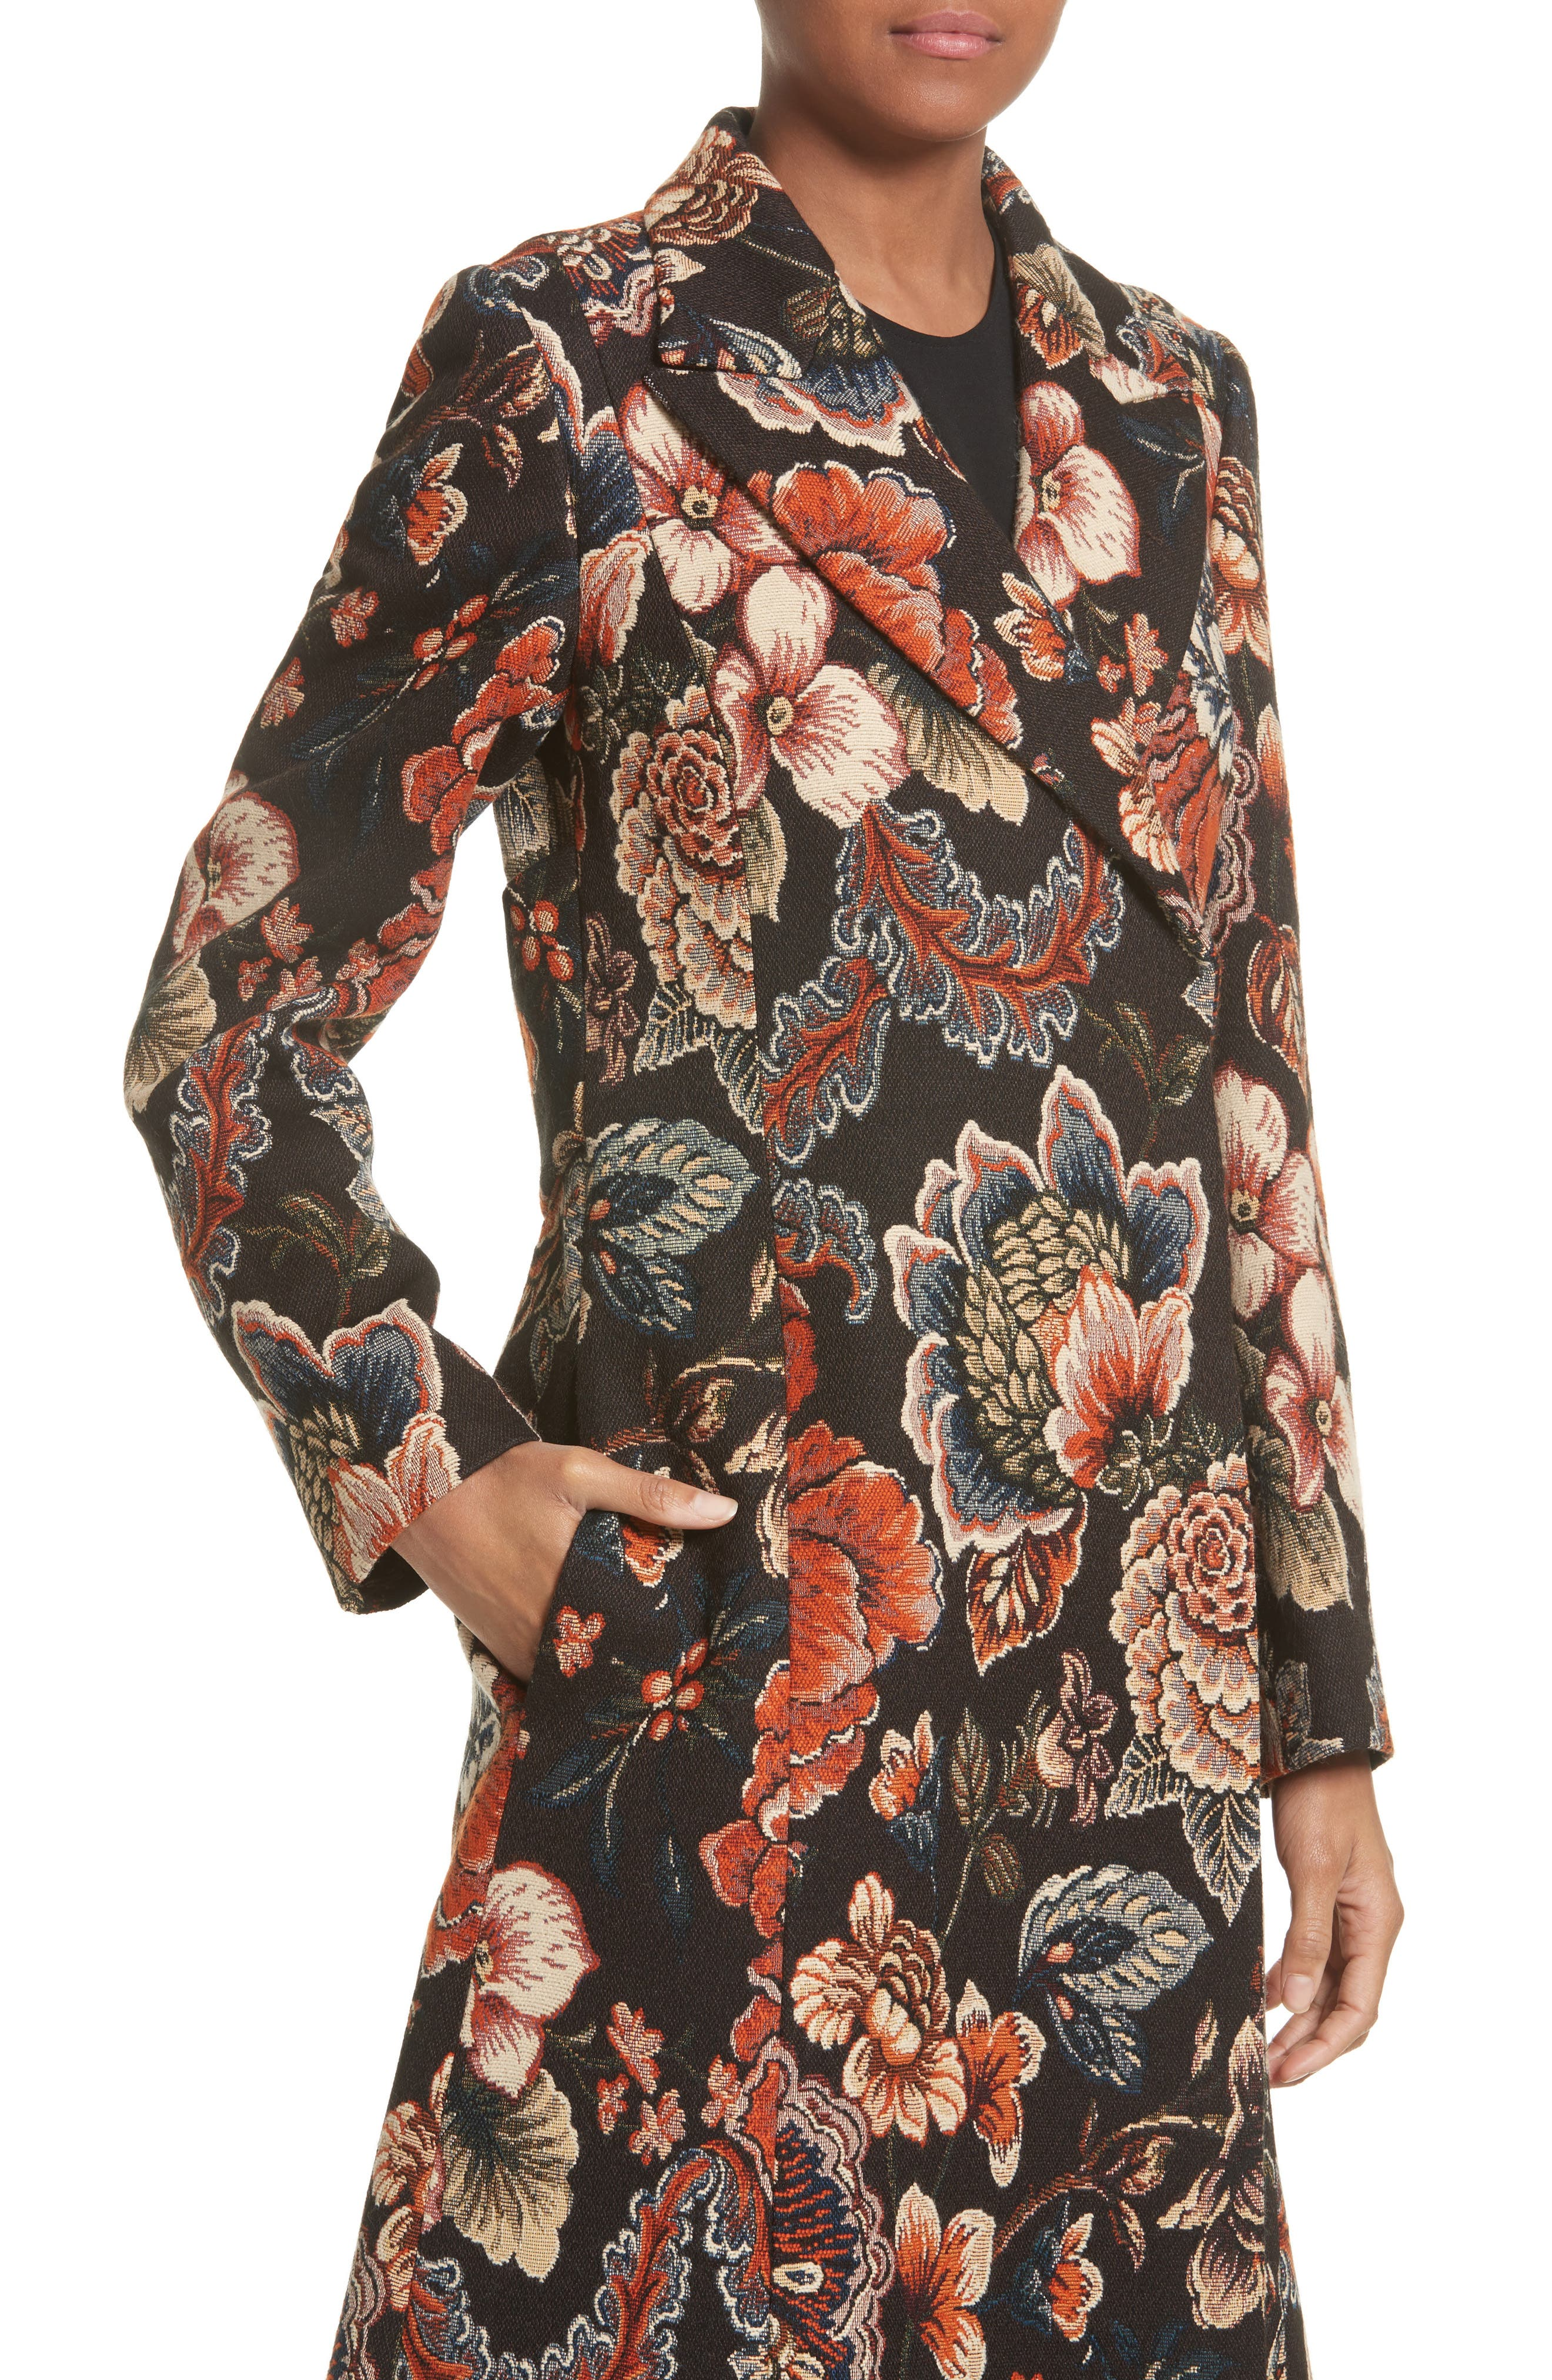 STELLA MCCARTNEY, Floral Tapestry Long Coat, Alternate thumbnail 4, color, 960